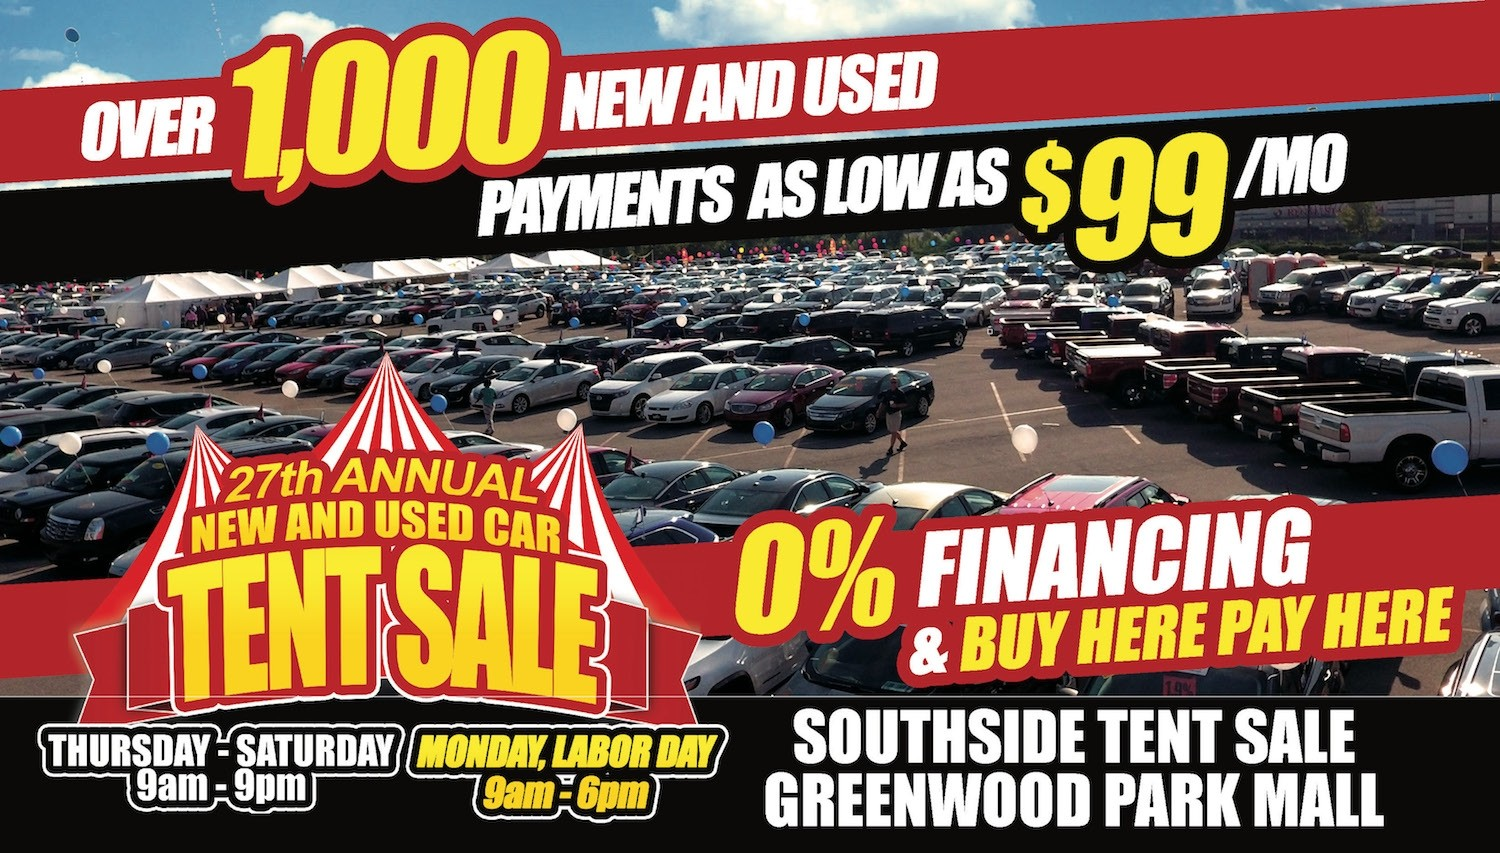 New-Used-Car-Tent-Sale